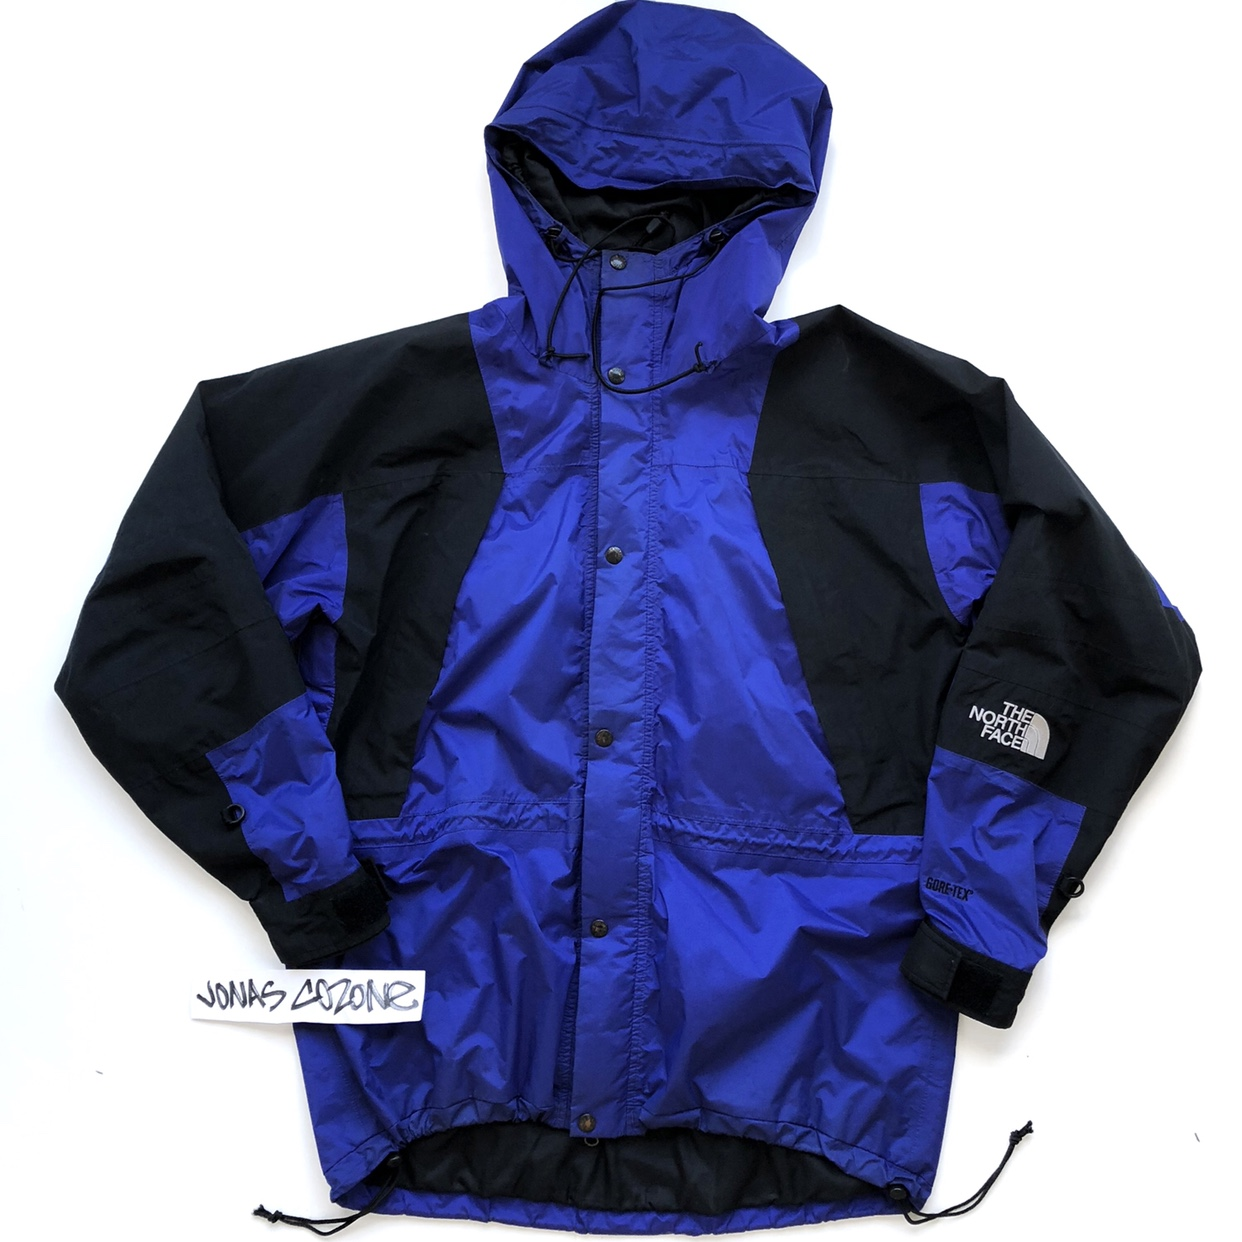 3a44f2bae Vintage 1990s The North Face mountain light gore-tex... - Depop